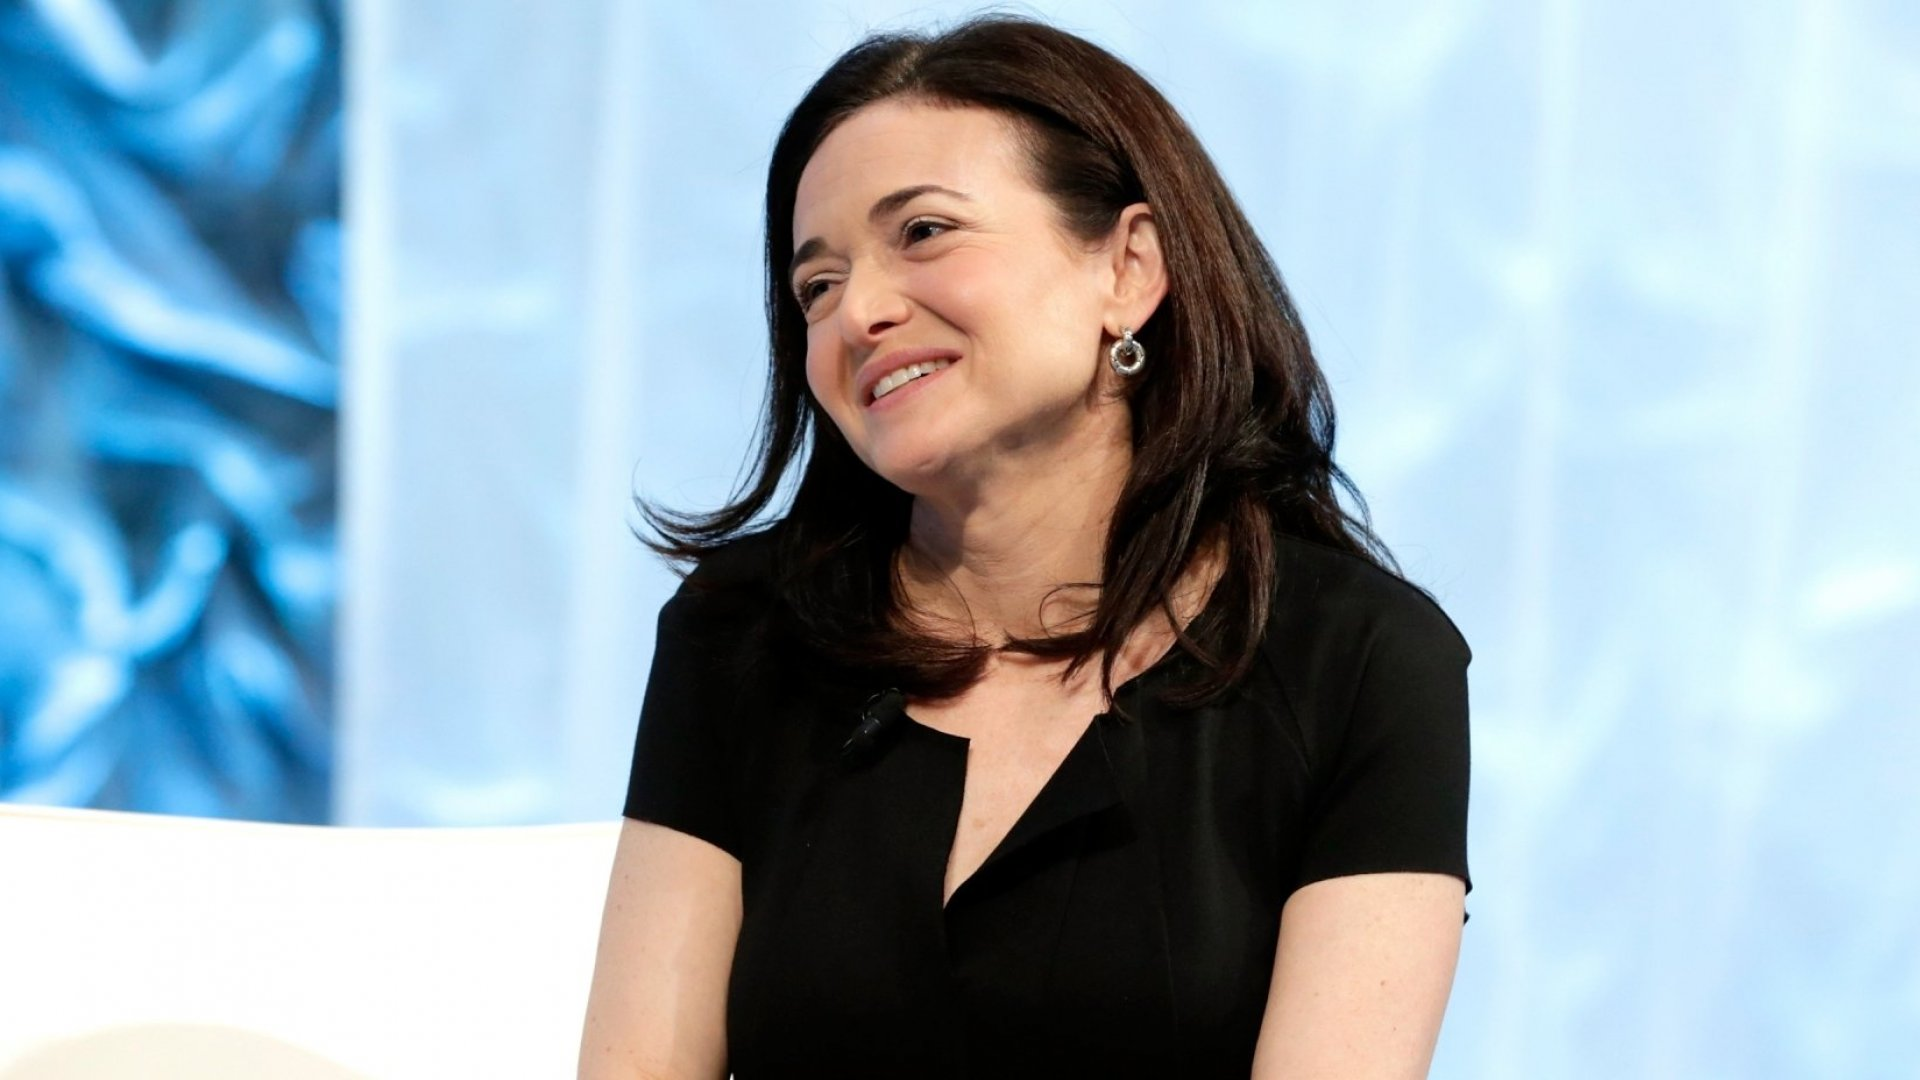 Sheryl Sandberg Is Being Approached to Replace Travis Kalanick as CEO of Uber